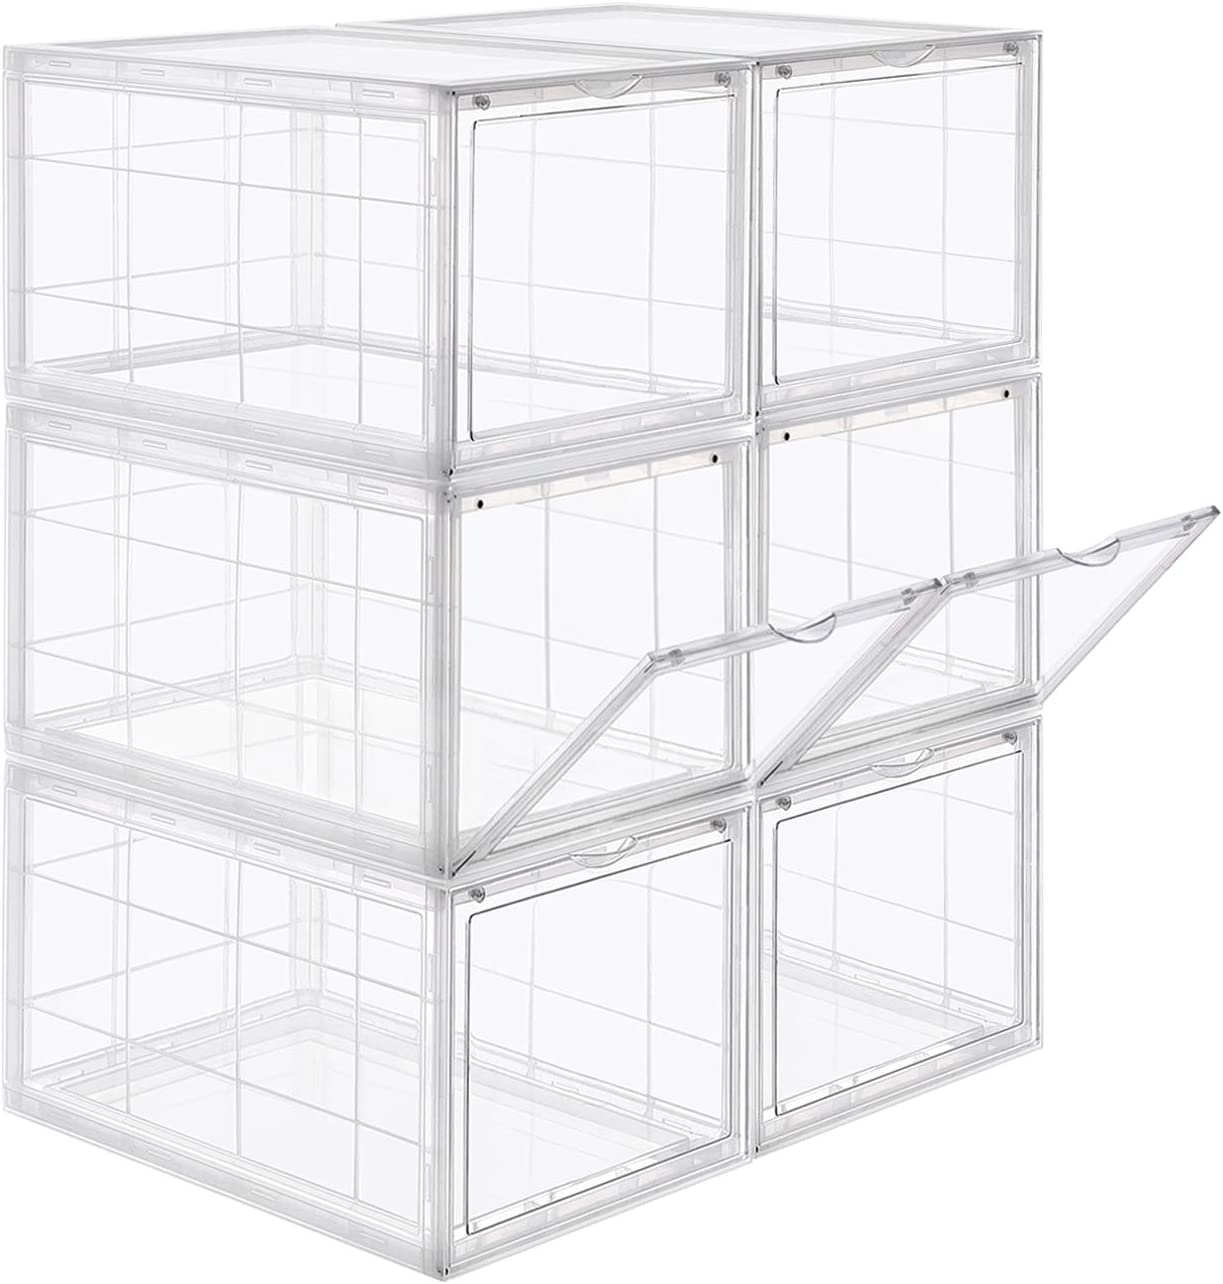 SONGMICS Shoe Box, Stackable Shoe Organiser, Plastic Shoe Storage with Clear Door, Easy to Assemble, Set of 6, 28 x 36 x 22 cm, Sizes up to UK 11, Transparent LSP06TP